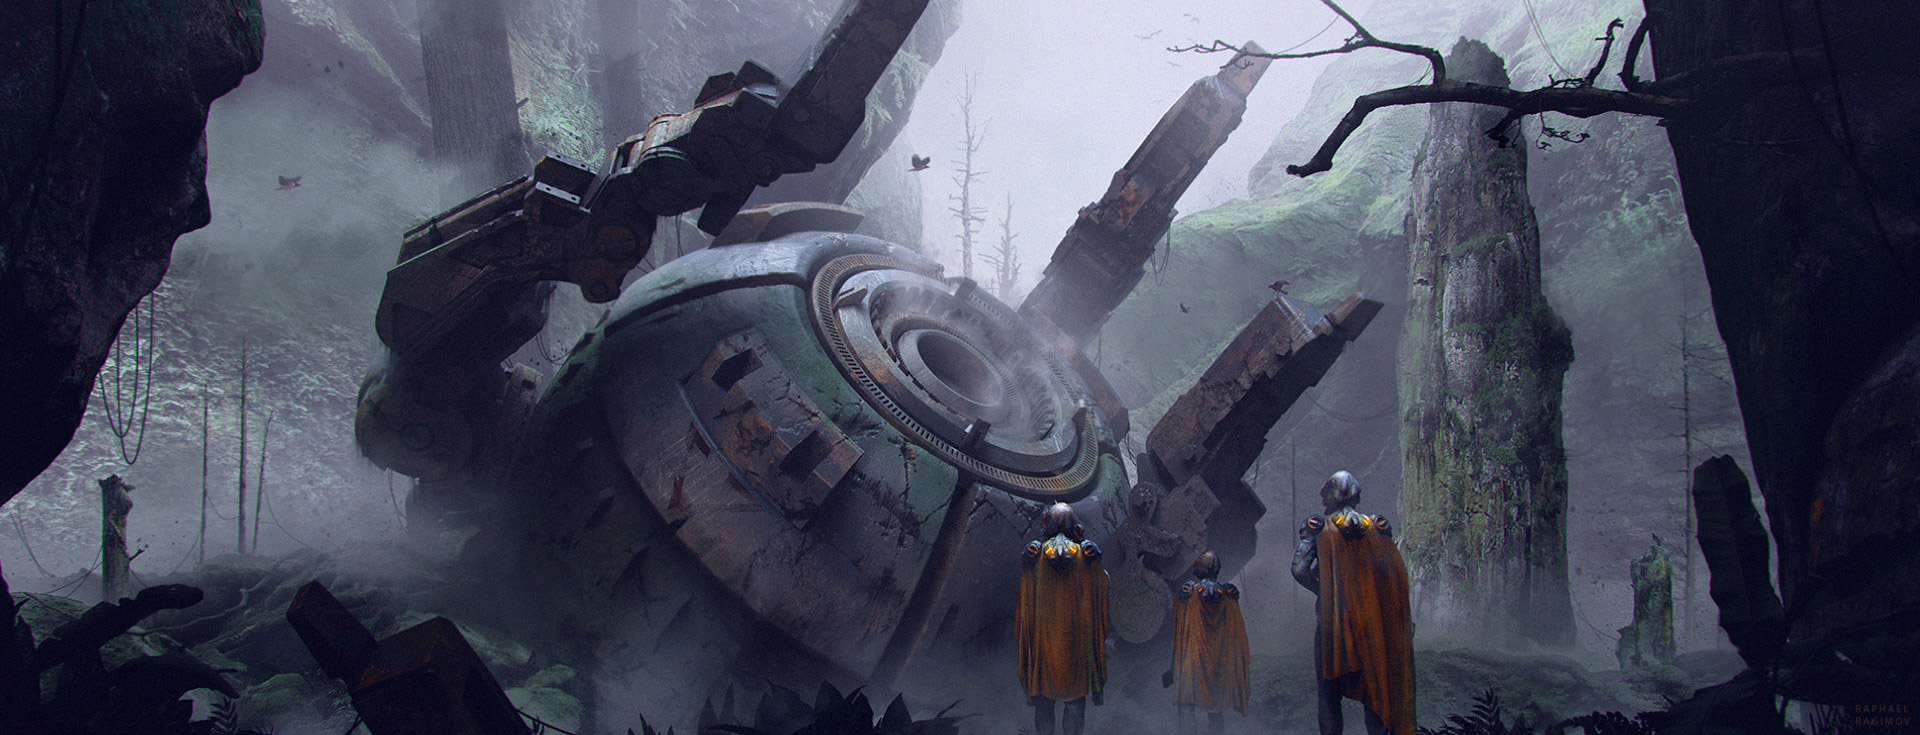 The Sci-Fi & Fantasy Art of Raphael Ragimov